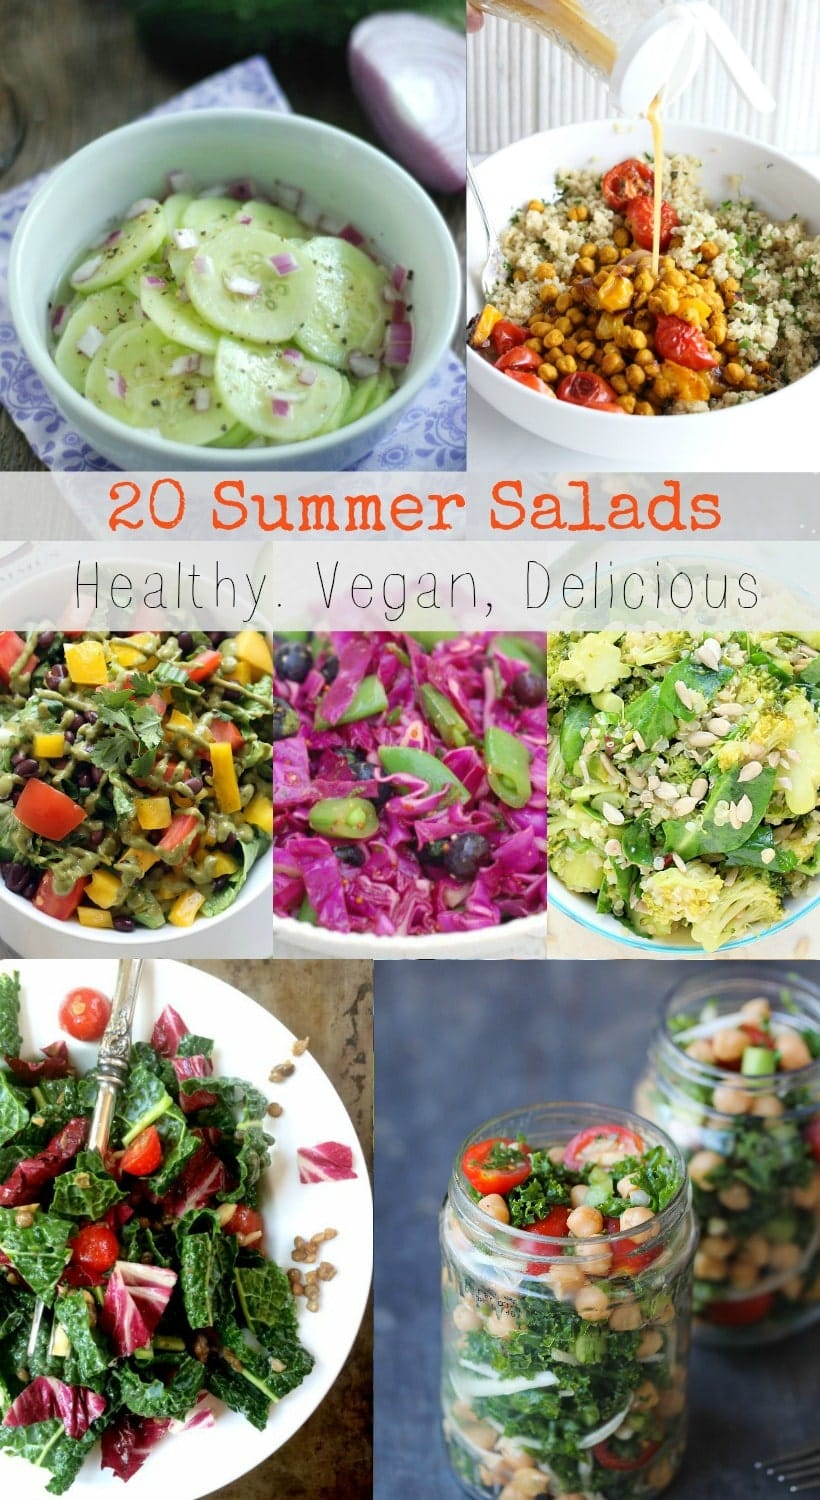 Celebrate these season! 20 Healthy Vegan Summer Salads featuring fresh and delicious seasonal produce. Enjoy! | Recipe Round-Up @thespicyrd